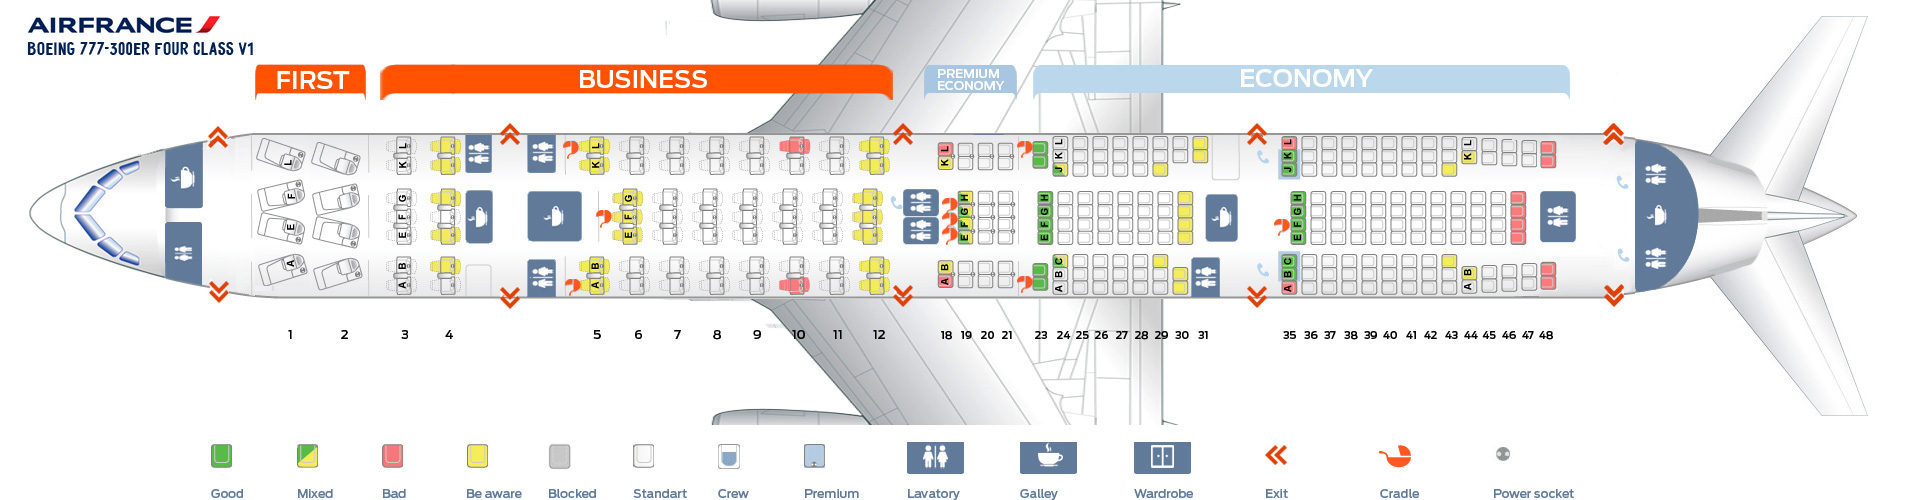 Seat Map Boeing 777-300 ER Four class V1 Air France